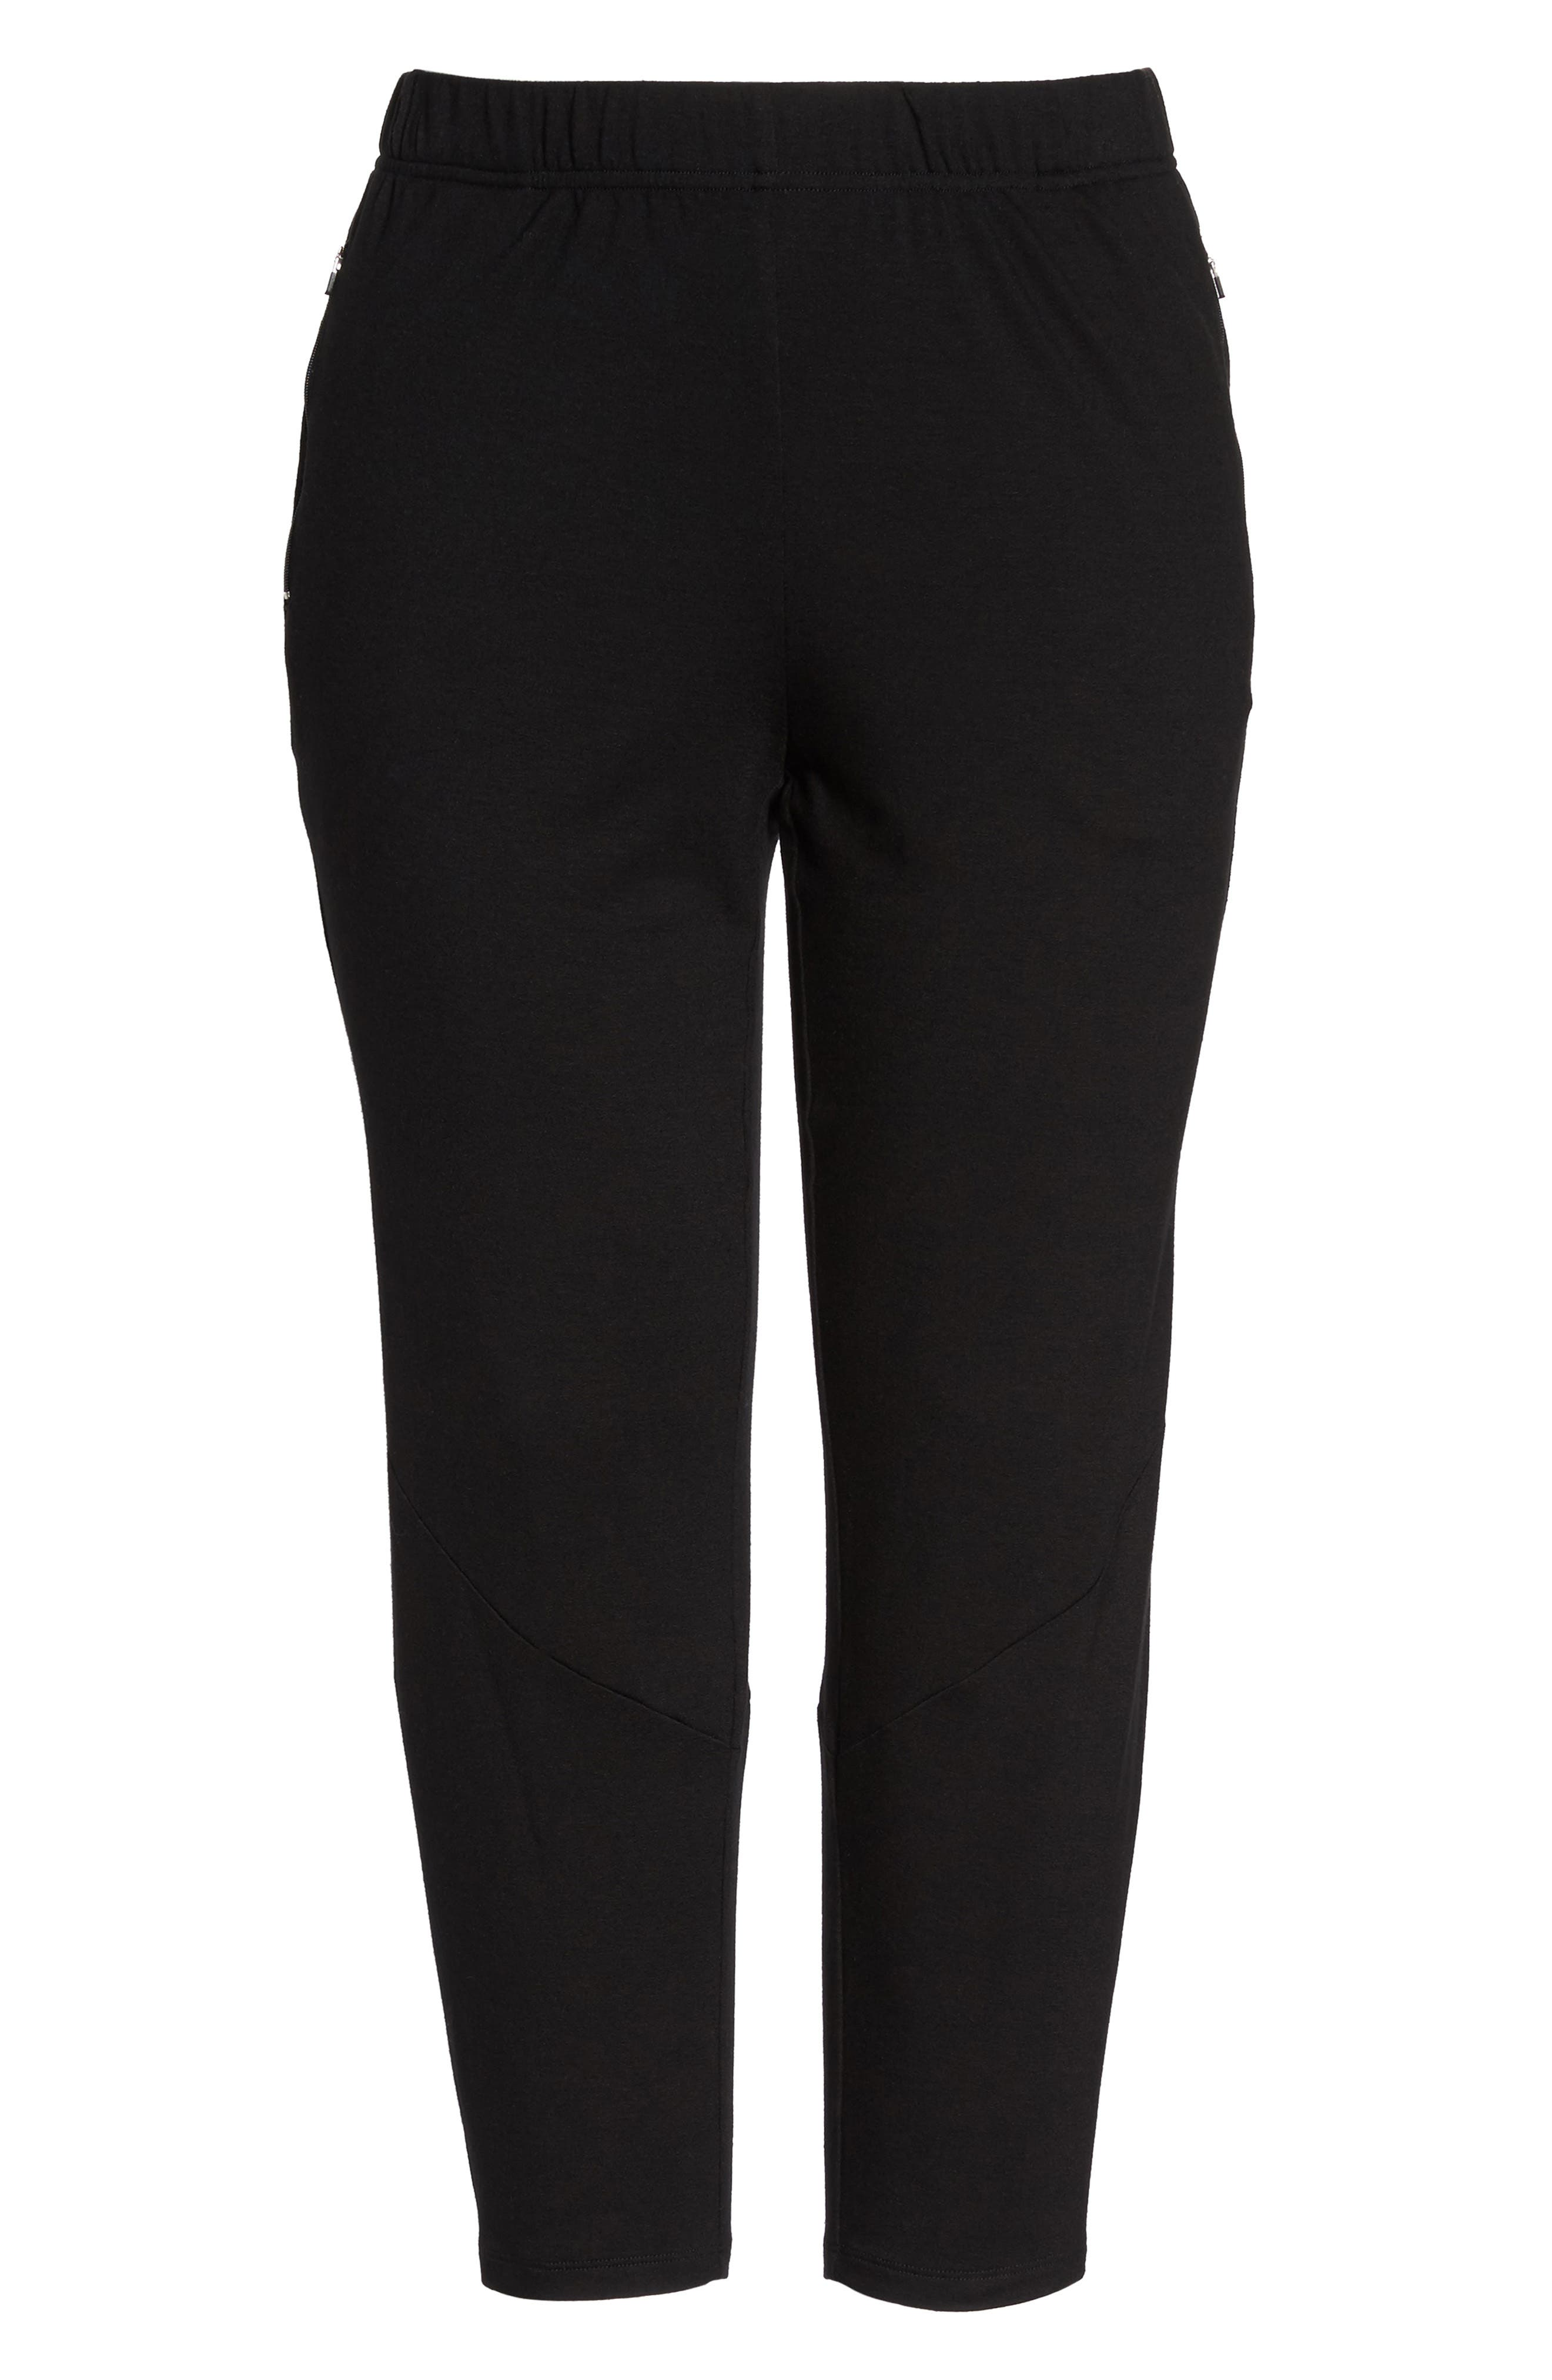 Slouchy Stretch Pants,                             Alternate thumbnail 6, color,                             001